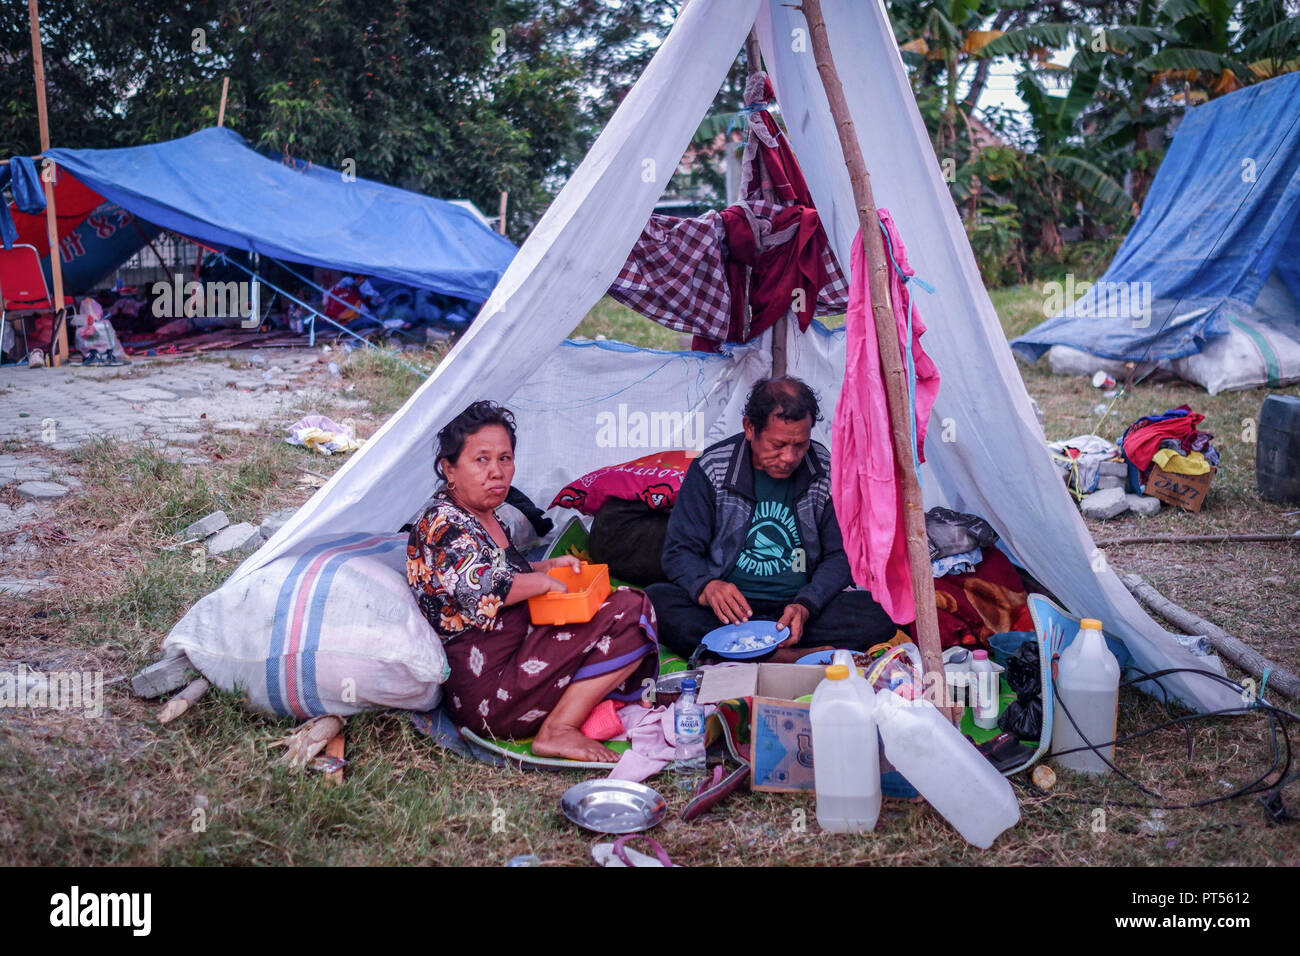 Palu, Indonesia. 4th Oct, 2018. Refugees seen resting in the Lere Refugee settlement.A deadly earthquake measuring 7.7 magnitude and the tsunami wave caused by it has destroyed the city of Palu and much of the area in Central Sulawesi. According to the officials, death toll from devastating quake and tsunami rises to 1,347, around 800 people in hospitals are seriously injured and some 62,000 people have been displaced in 24 camps around the region. Credit: Hariandi Hafid/SOPA Images/ZUMA Wire/Alamy Live News - Stock Image